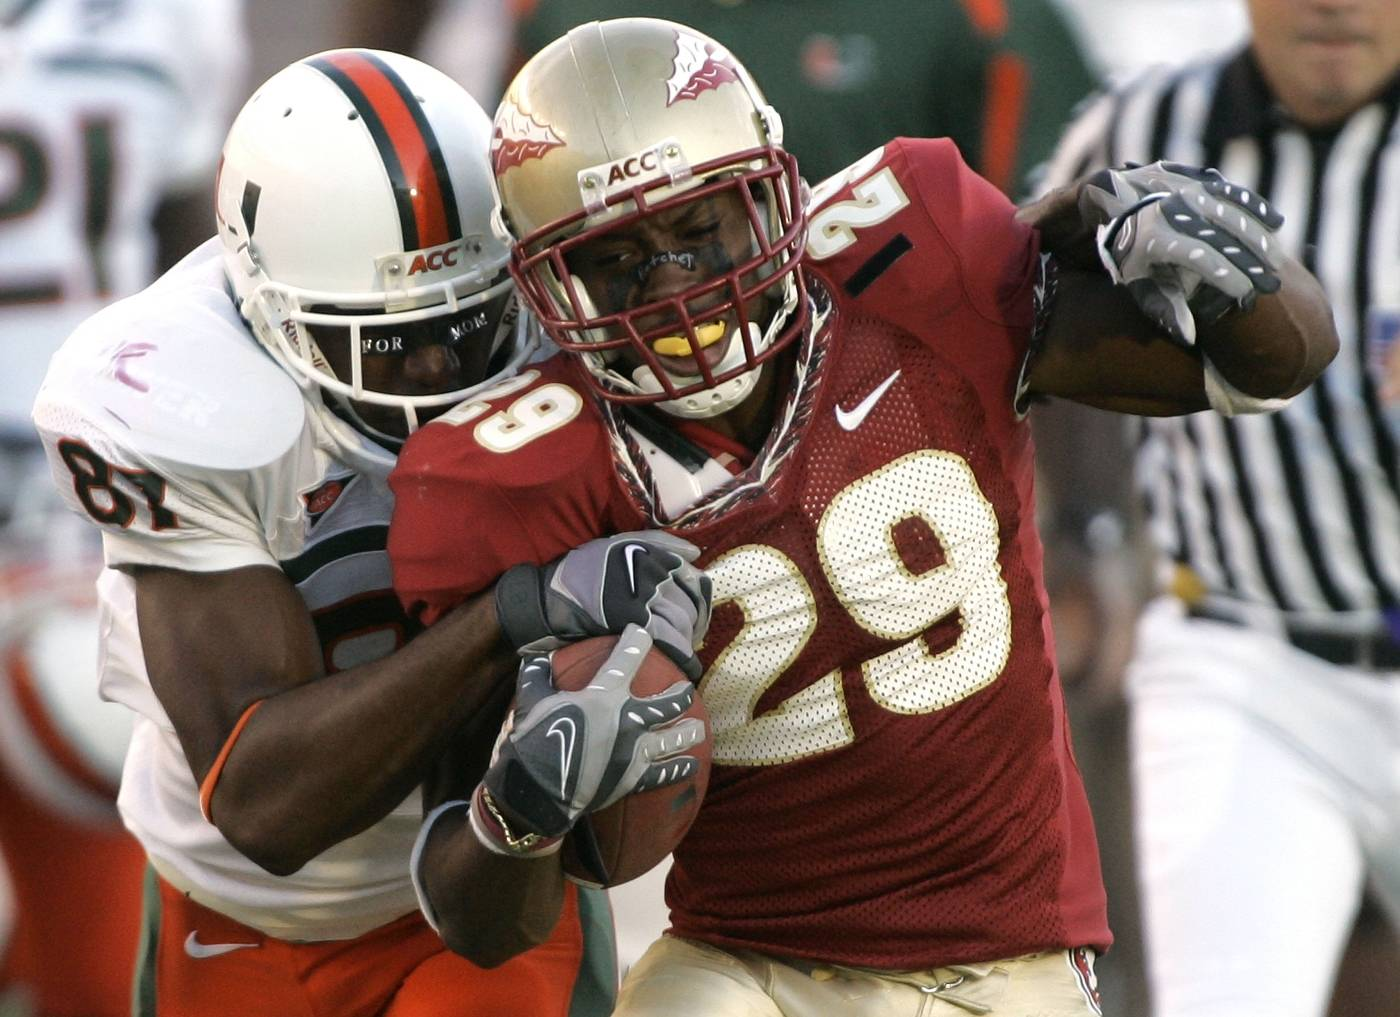 Florida State's Michael Ray Garvin, left, is tackled by Miami's Khalil Jones on a third quarter kickoff return. (AP Photo/Phil Coale)